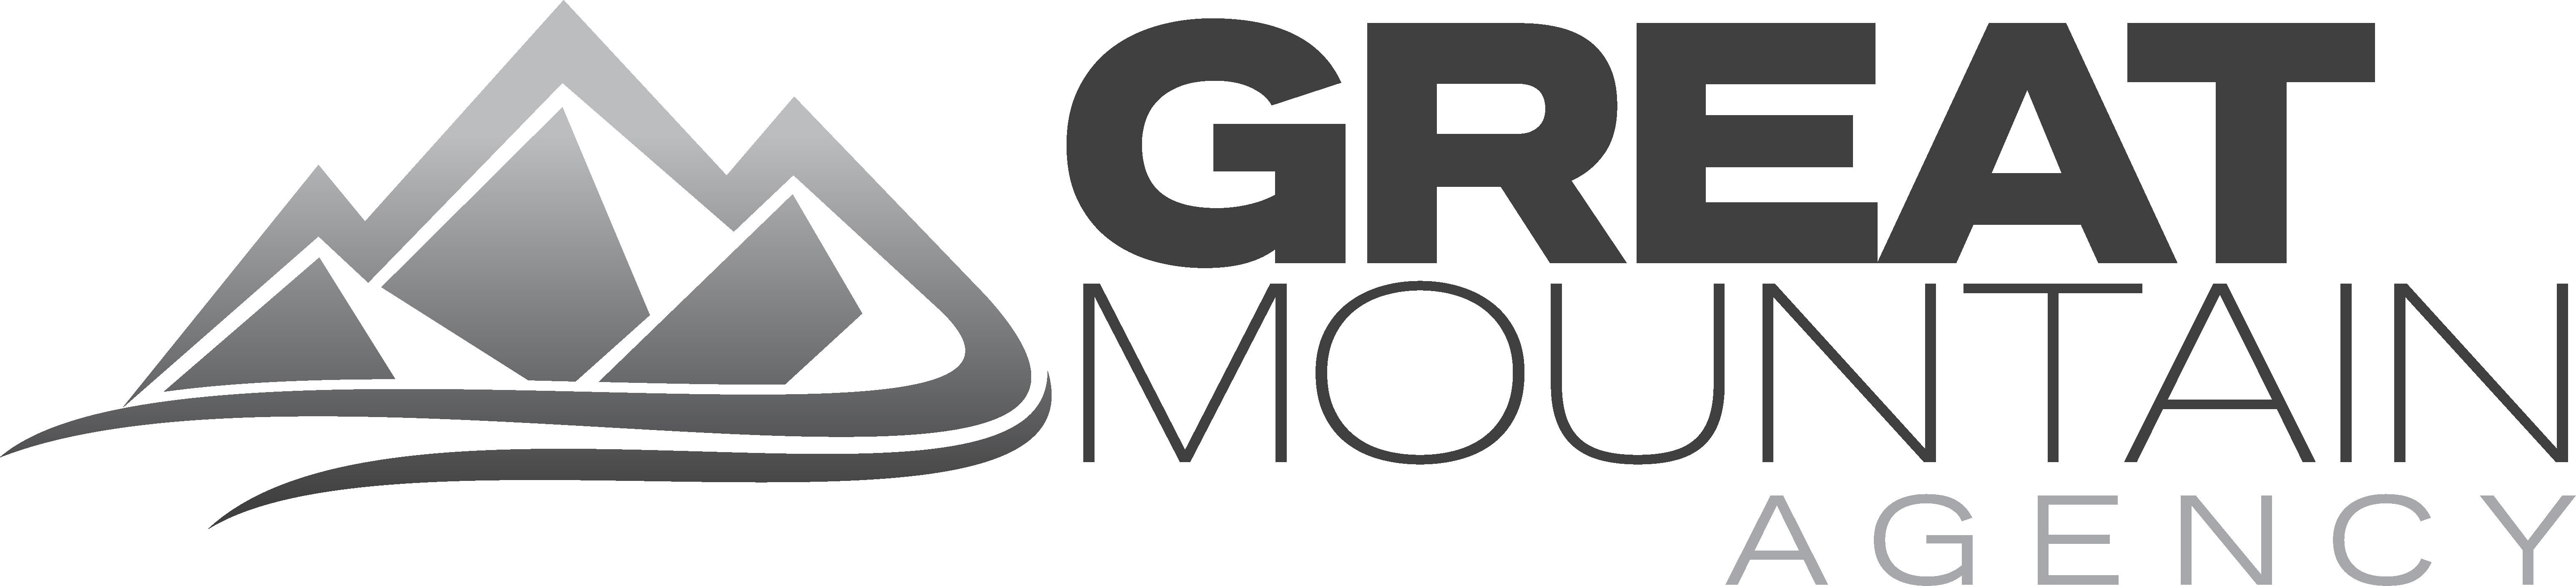 The Great Mountain Agency